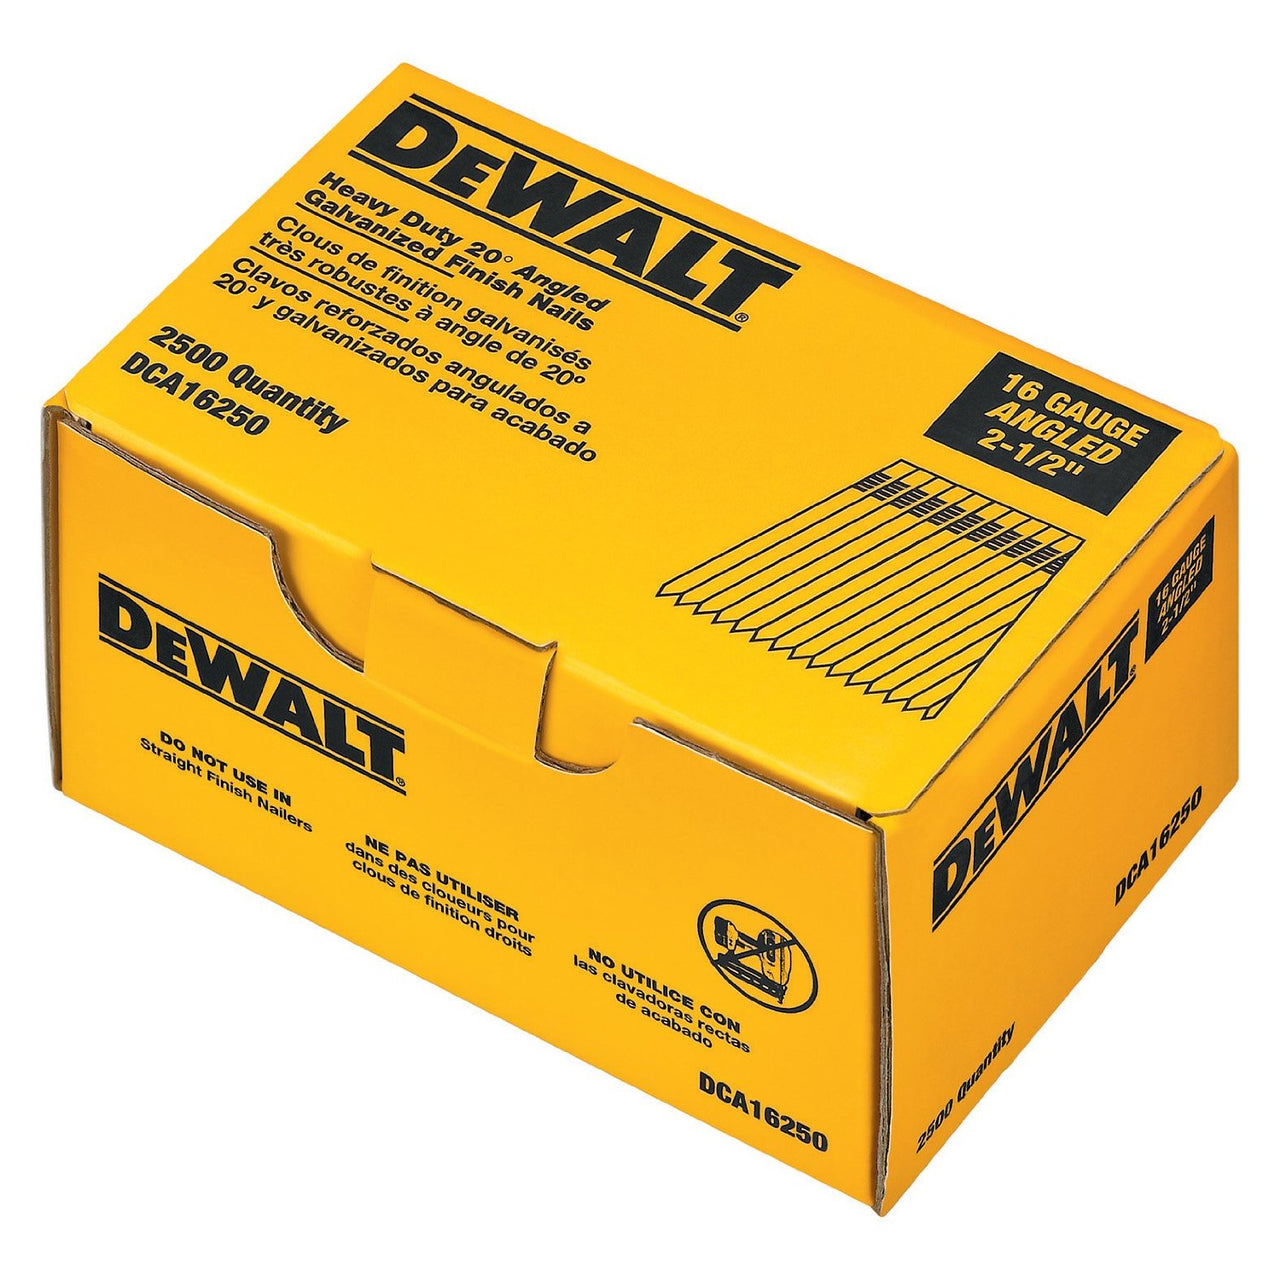 "Dewalt DCA16250 Stick Finishing Nail 2.5"", Galvanized"